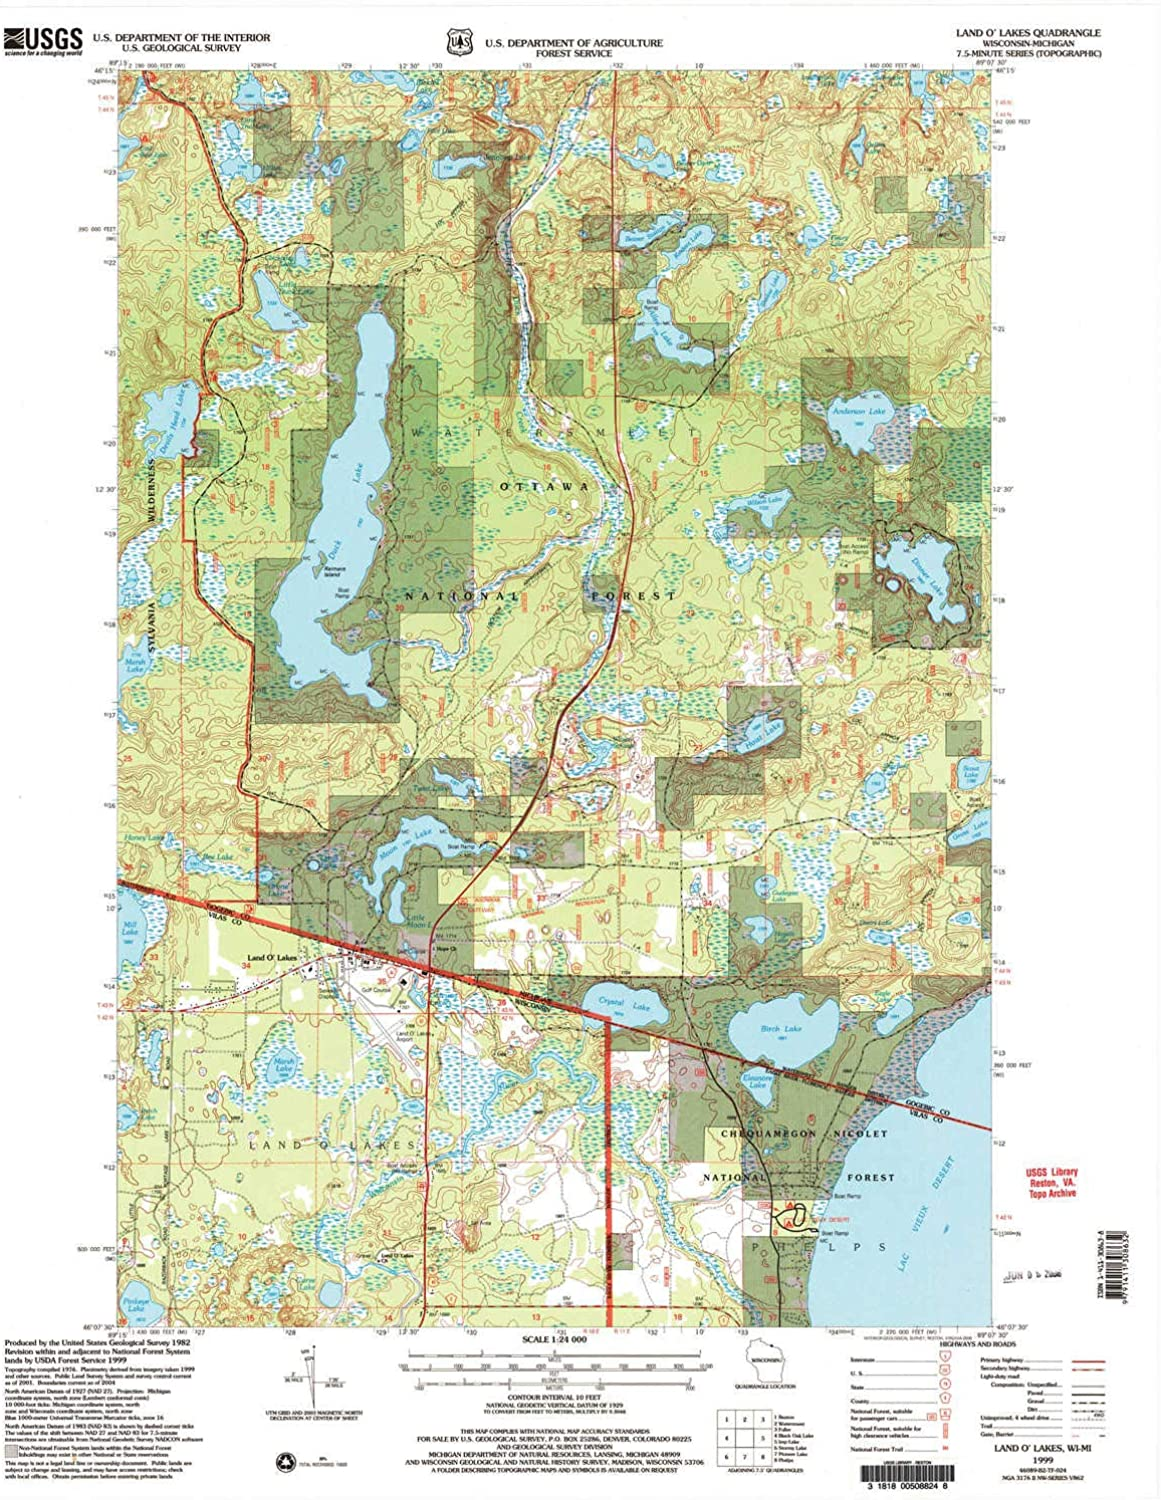 Land O Lakes WI topo map, 1 24000 Scale, 7.5 X 7.5 Minute, Historical, 1999, Updated 2005, 27.31 x 21.93 in